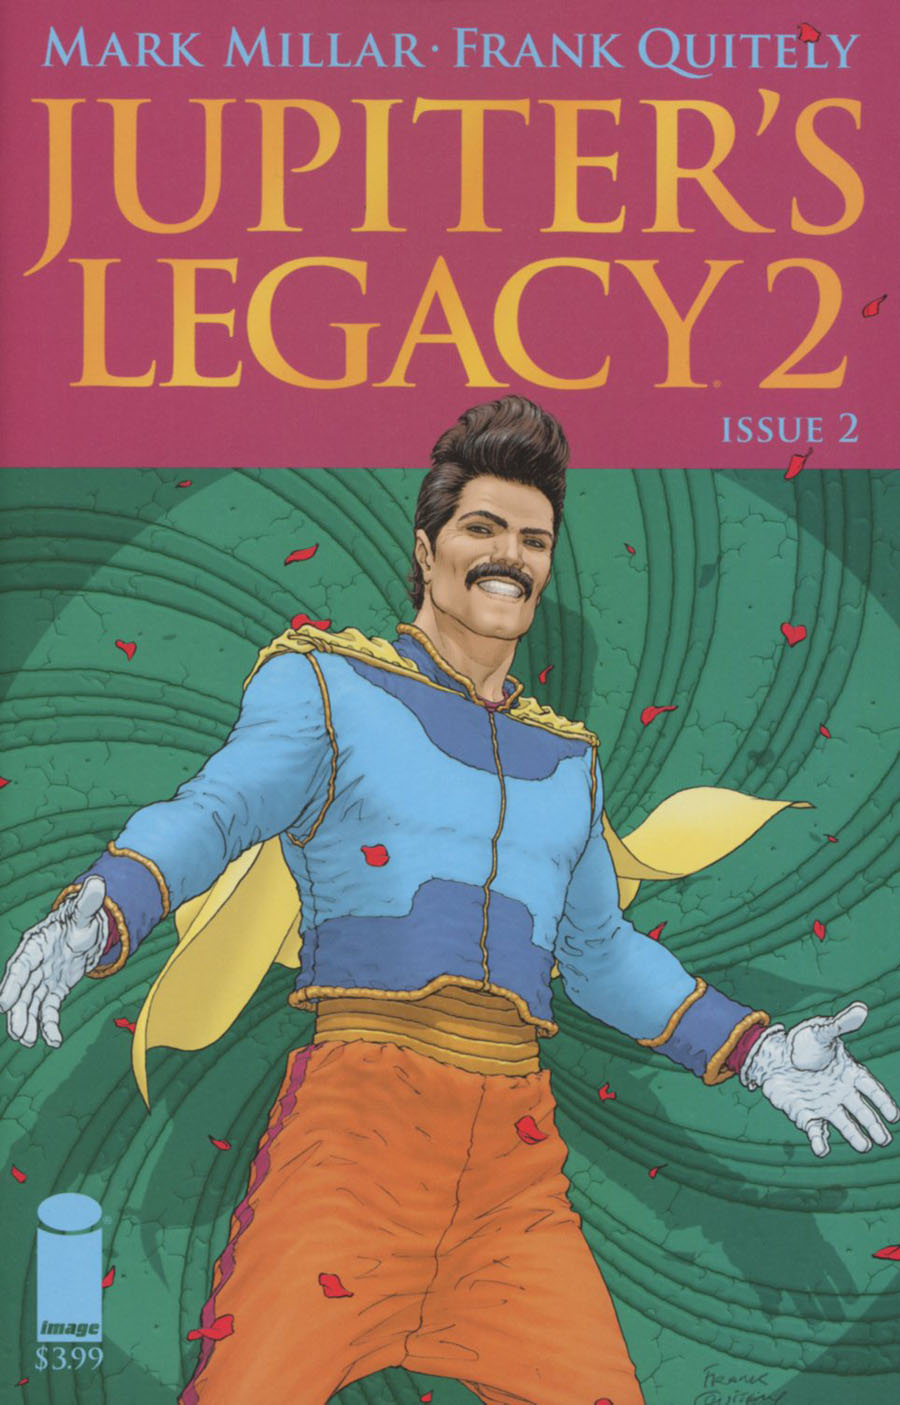 Jupiters Legacy Vol 2 #2 Cover A Regular Frank Quitely Cover